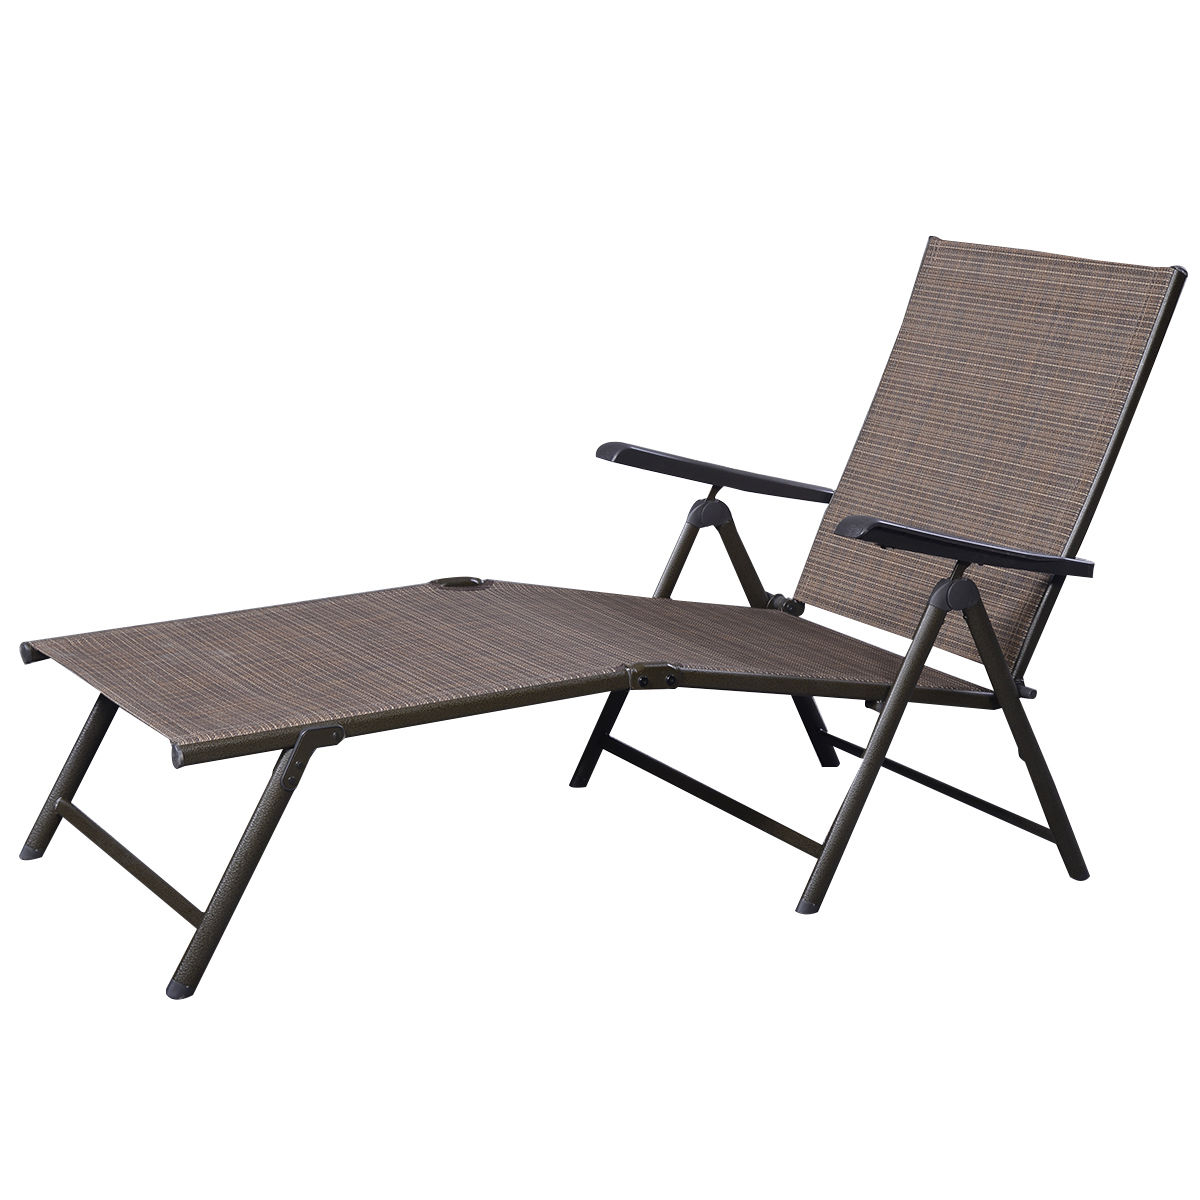 Most Recently Released Outdoor Cart Wheel Adjustable Chaise Lounge Chairs In Outdoor Adjustable Chaise Lounge Chair (View 10 of 25)